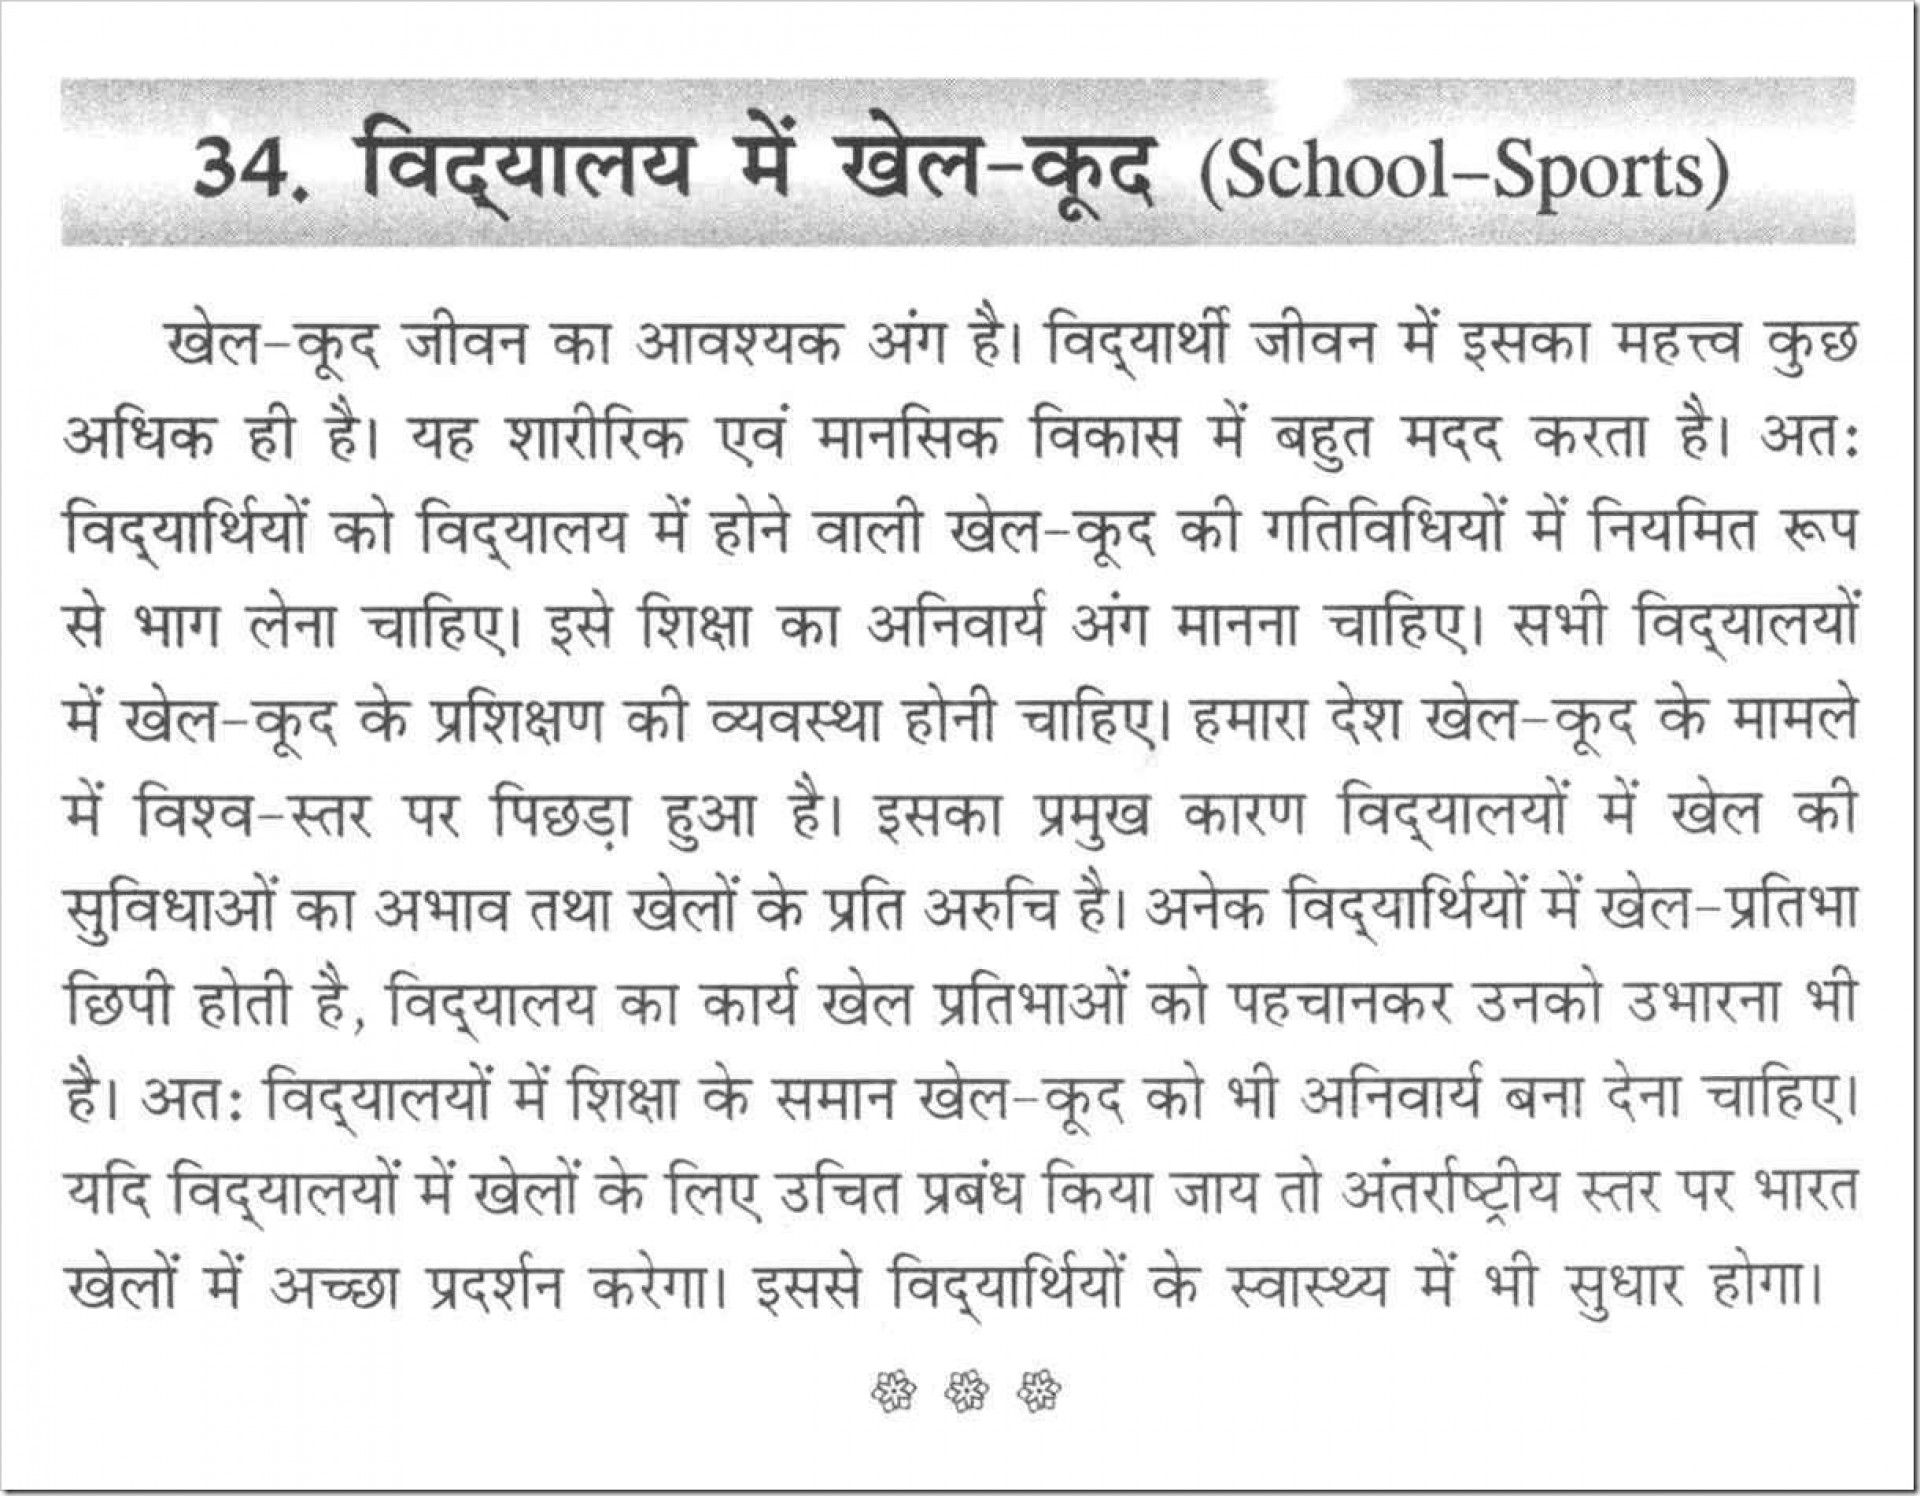 008 Importance Of Voting Essay Example The Election Commission Responsibility Aa133 School For Class Library Life In Marathi Uniform Hindi Sanskrit Unforgettable Tamil Pdf 1920